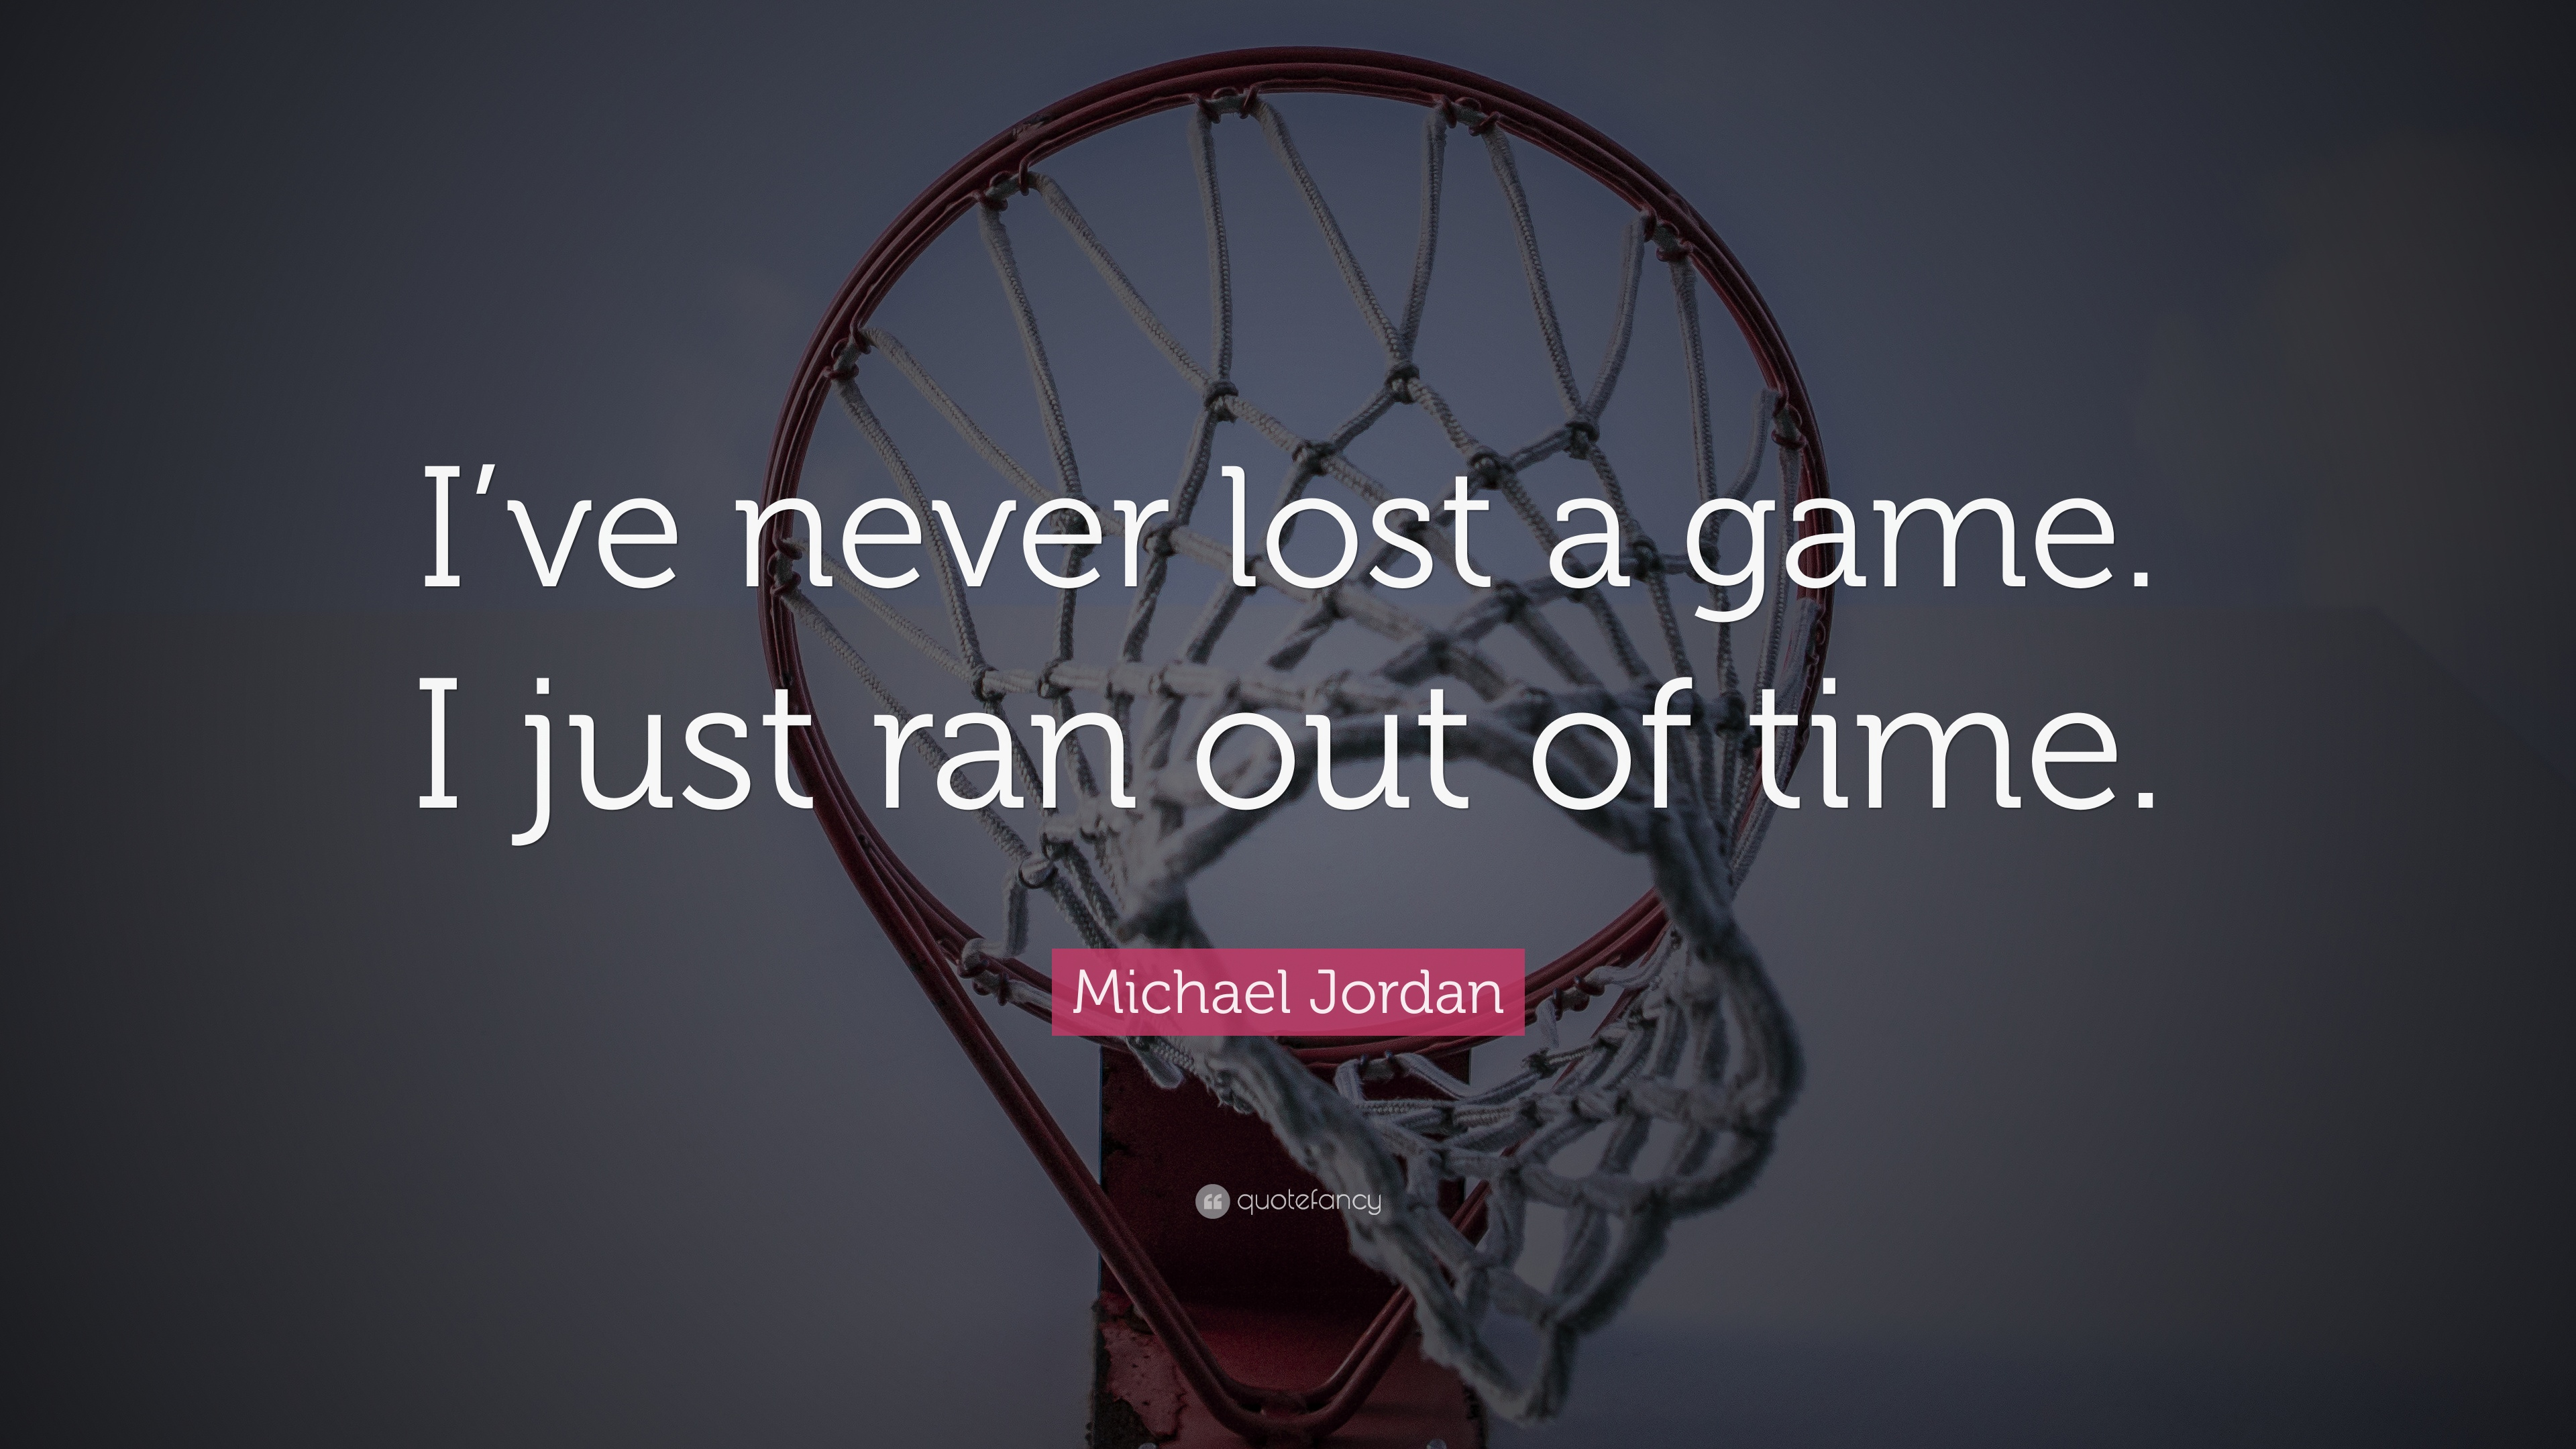 michael jordan quote i ve never lost a game i just ran out of time 18 wallpapers quotefancy i ve never lost a game i just ran out